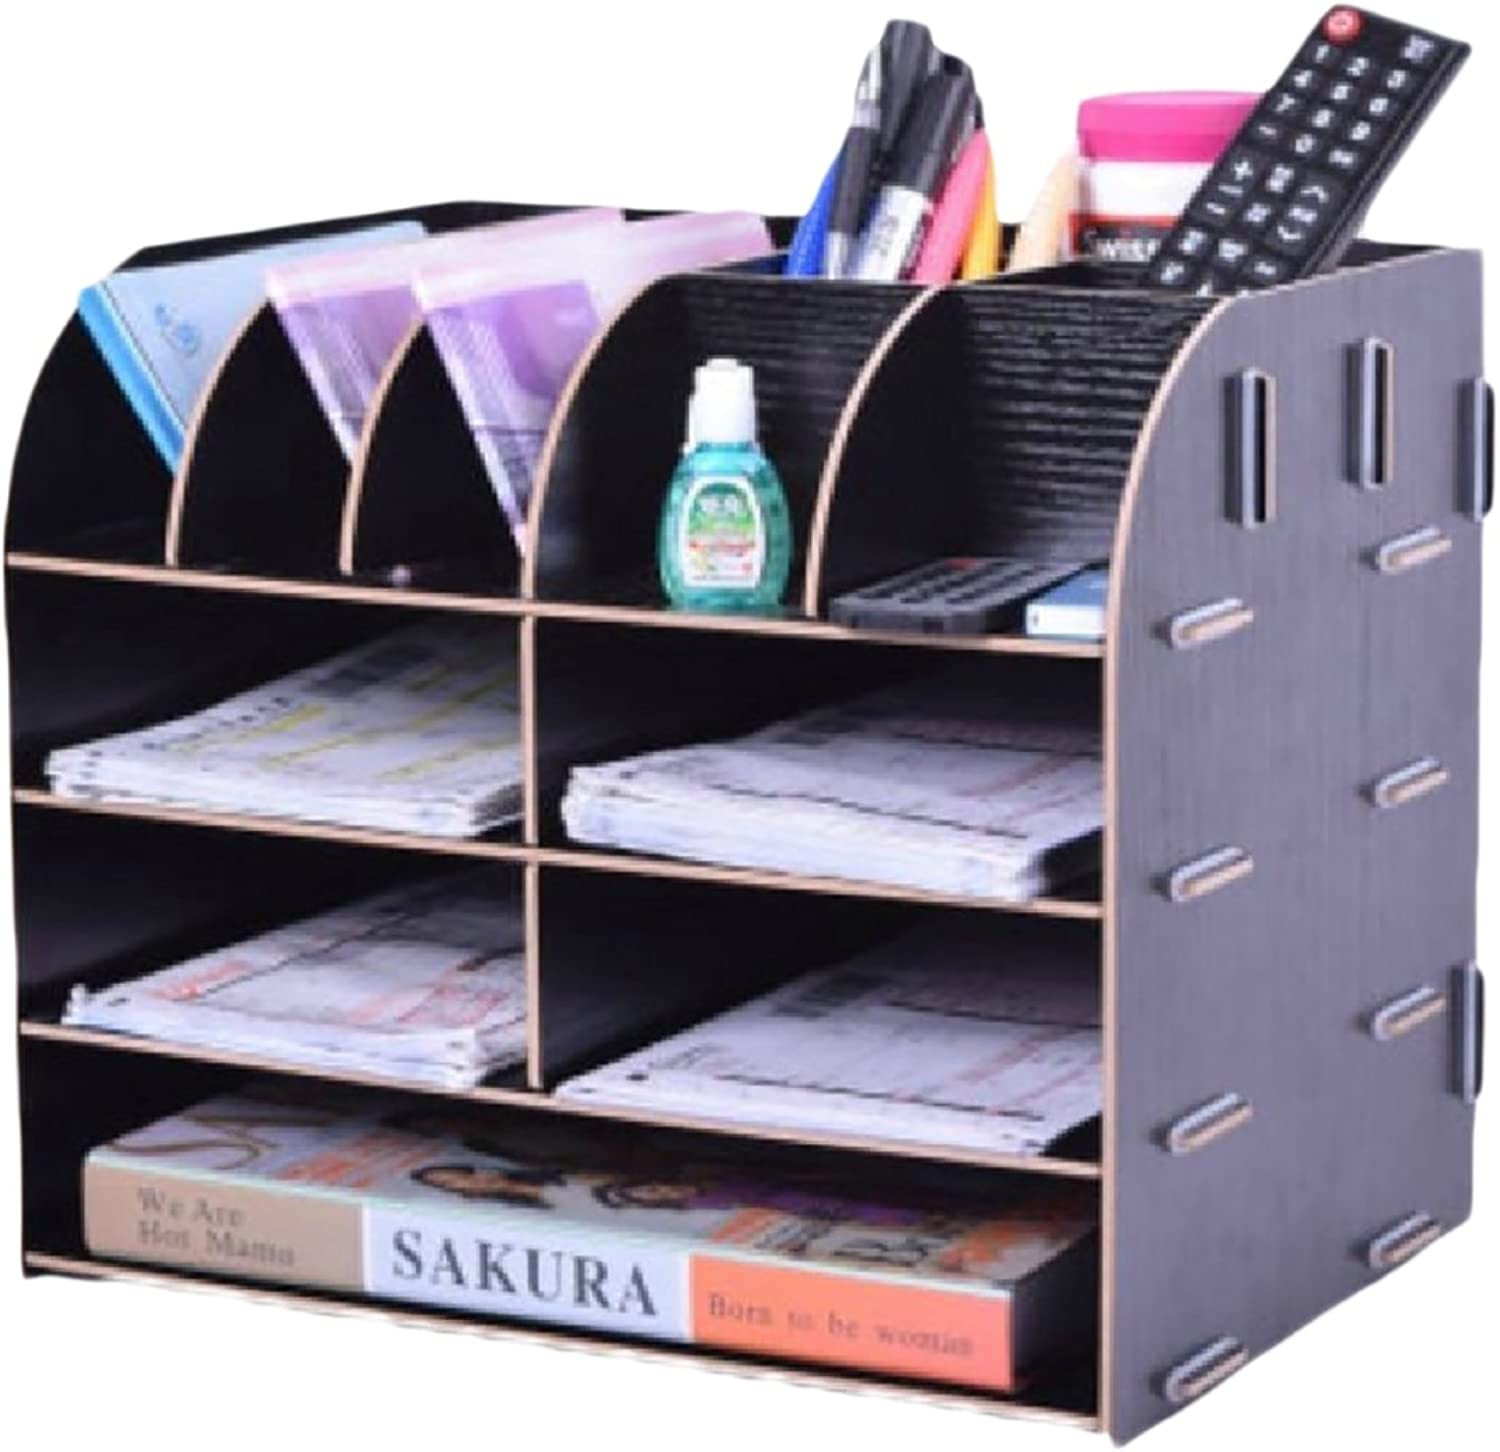 Winwinus Shelving Unit Designs Steel Organizer System Collapsable Stackable Wall Mounted Bookcase Black 4 Shelves